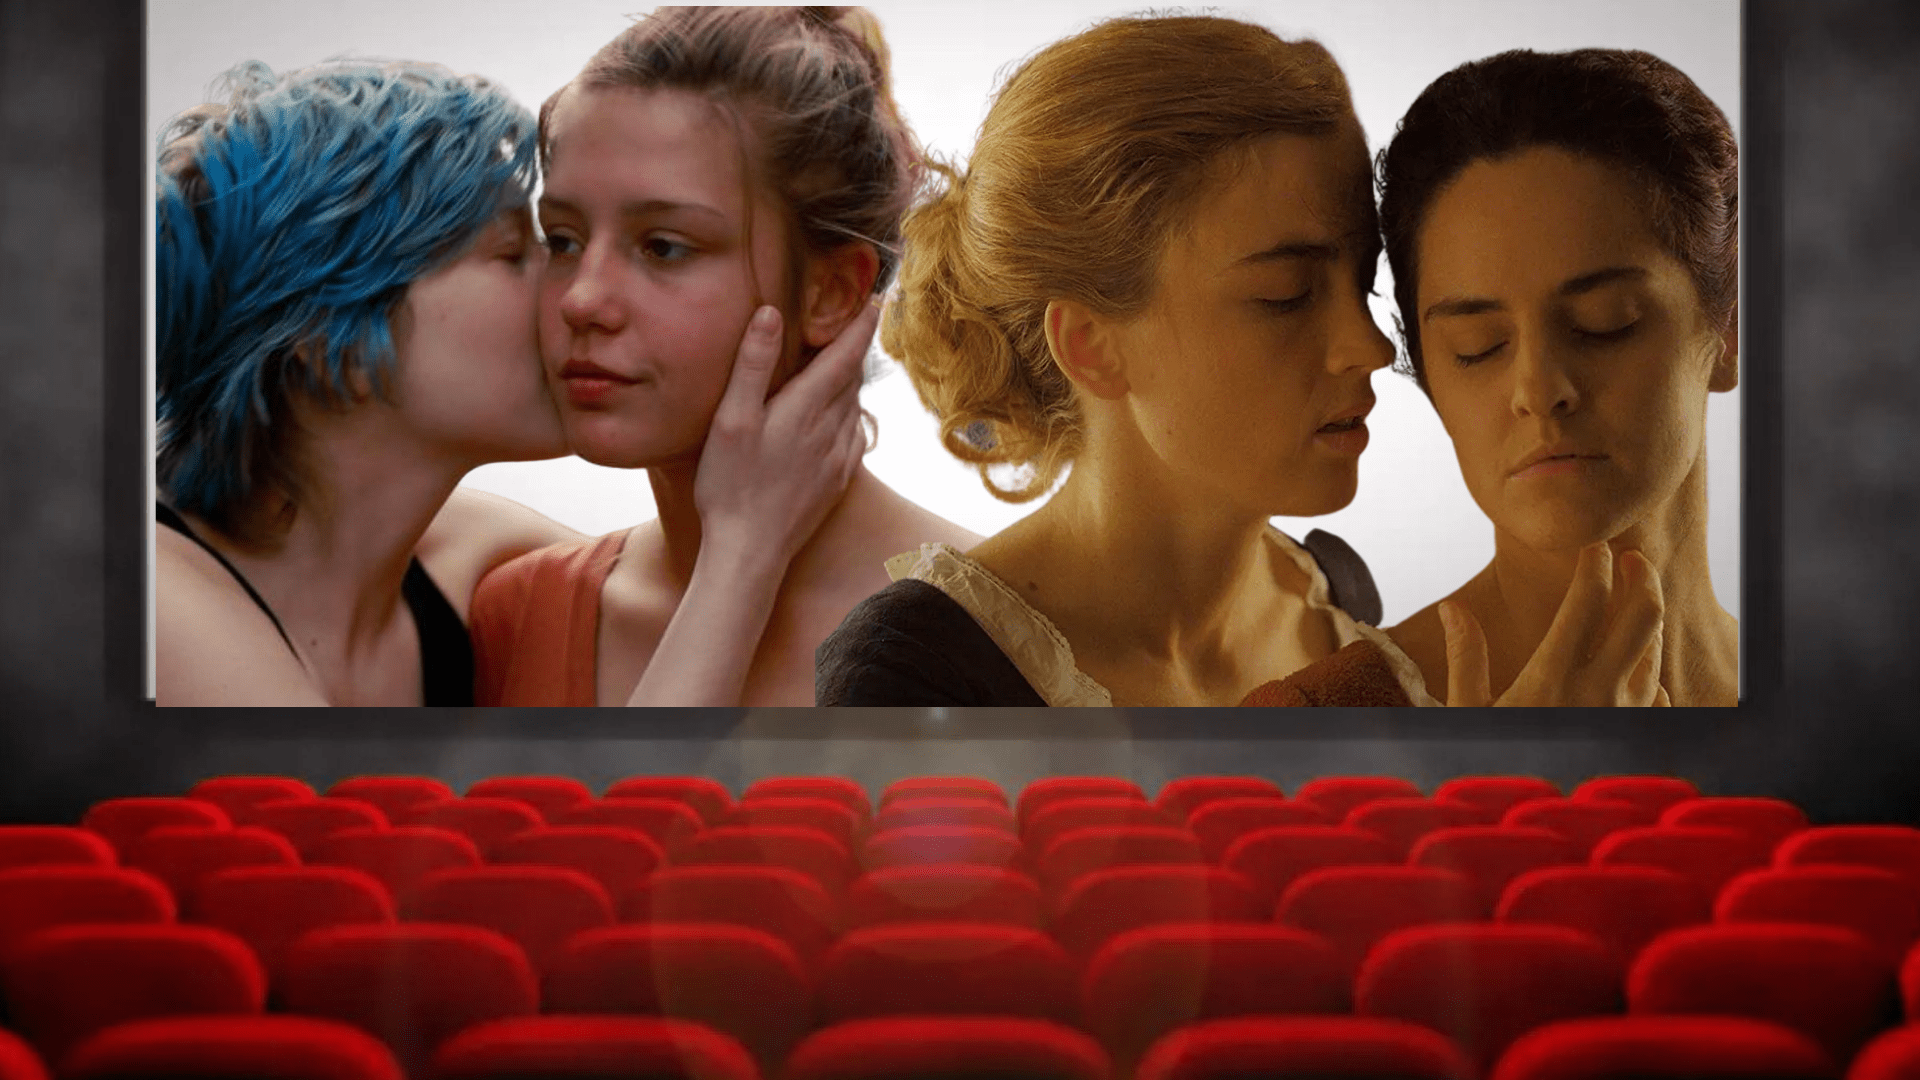 The Fetishisation Of Lesbian Relationships In Cinema And Pop Culture